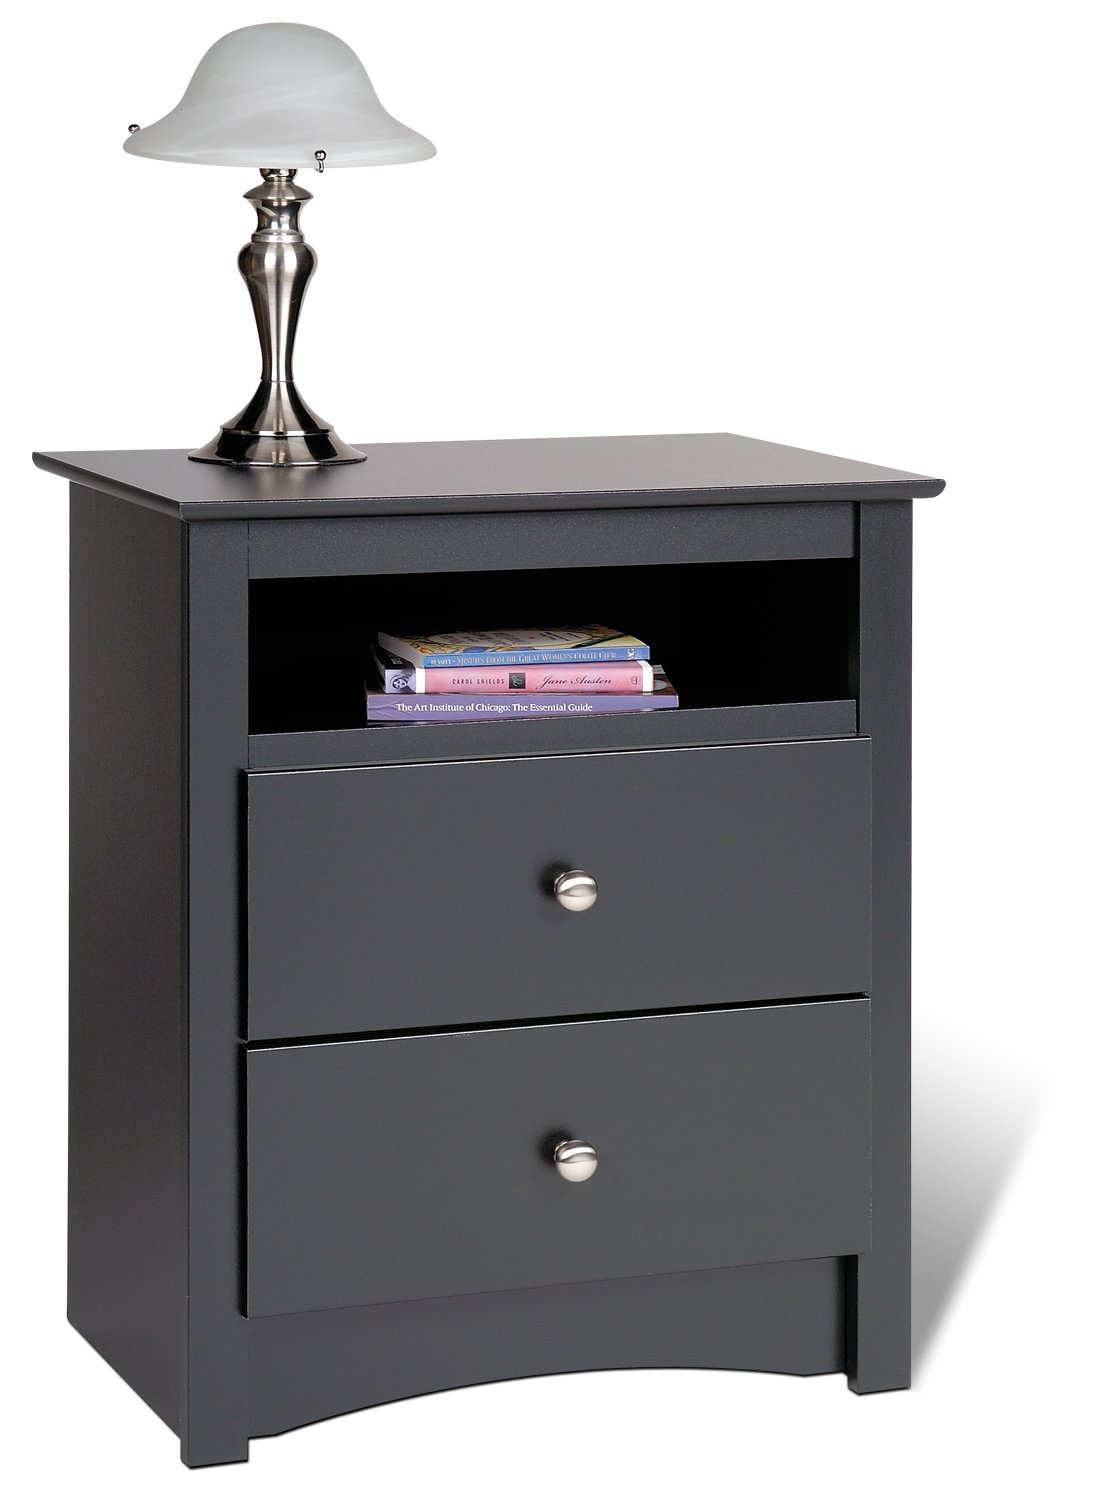 Amazon.com: Nightstands - Bedroom Furniture: Home & Kitchen